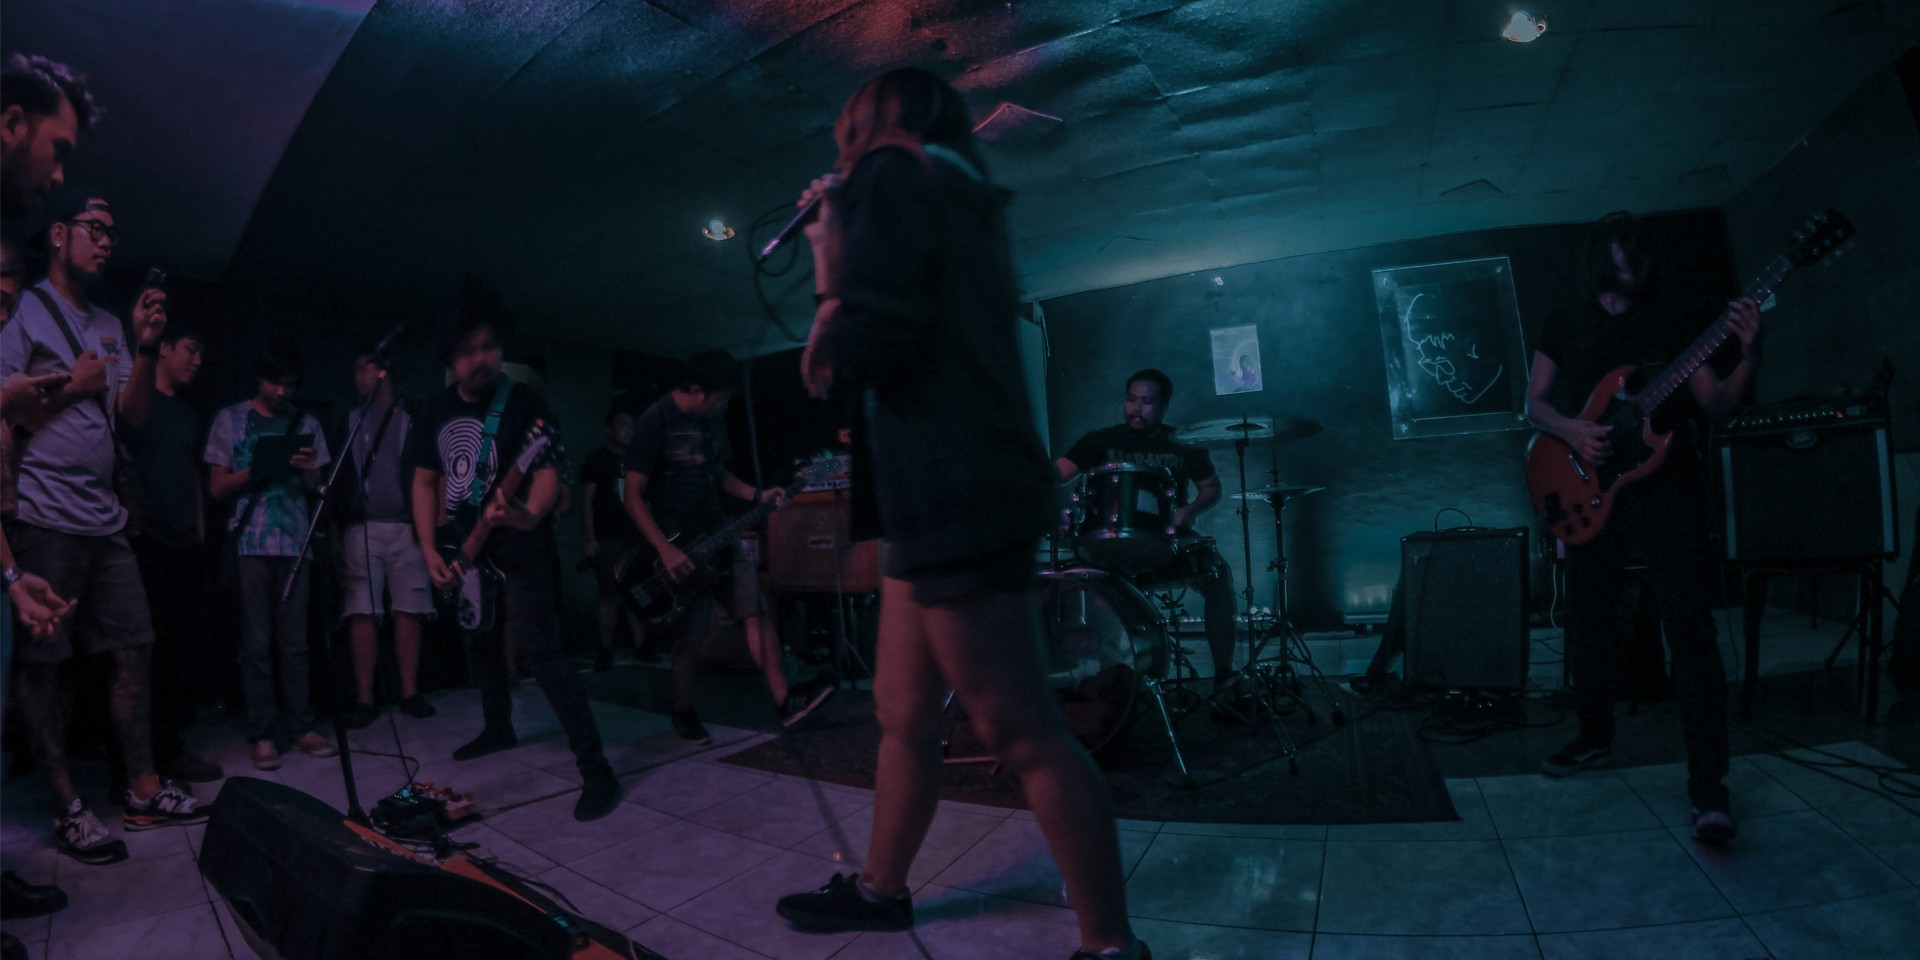 Filipino emo/punk band Irrevocable to play in Singapore with stacked local lineup: Fader, Xingfoo&Roy, Sobs and more